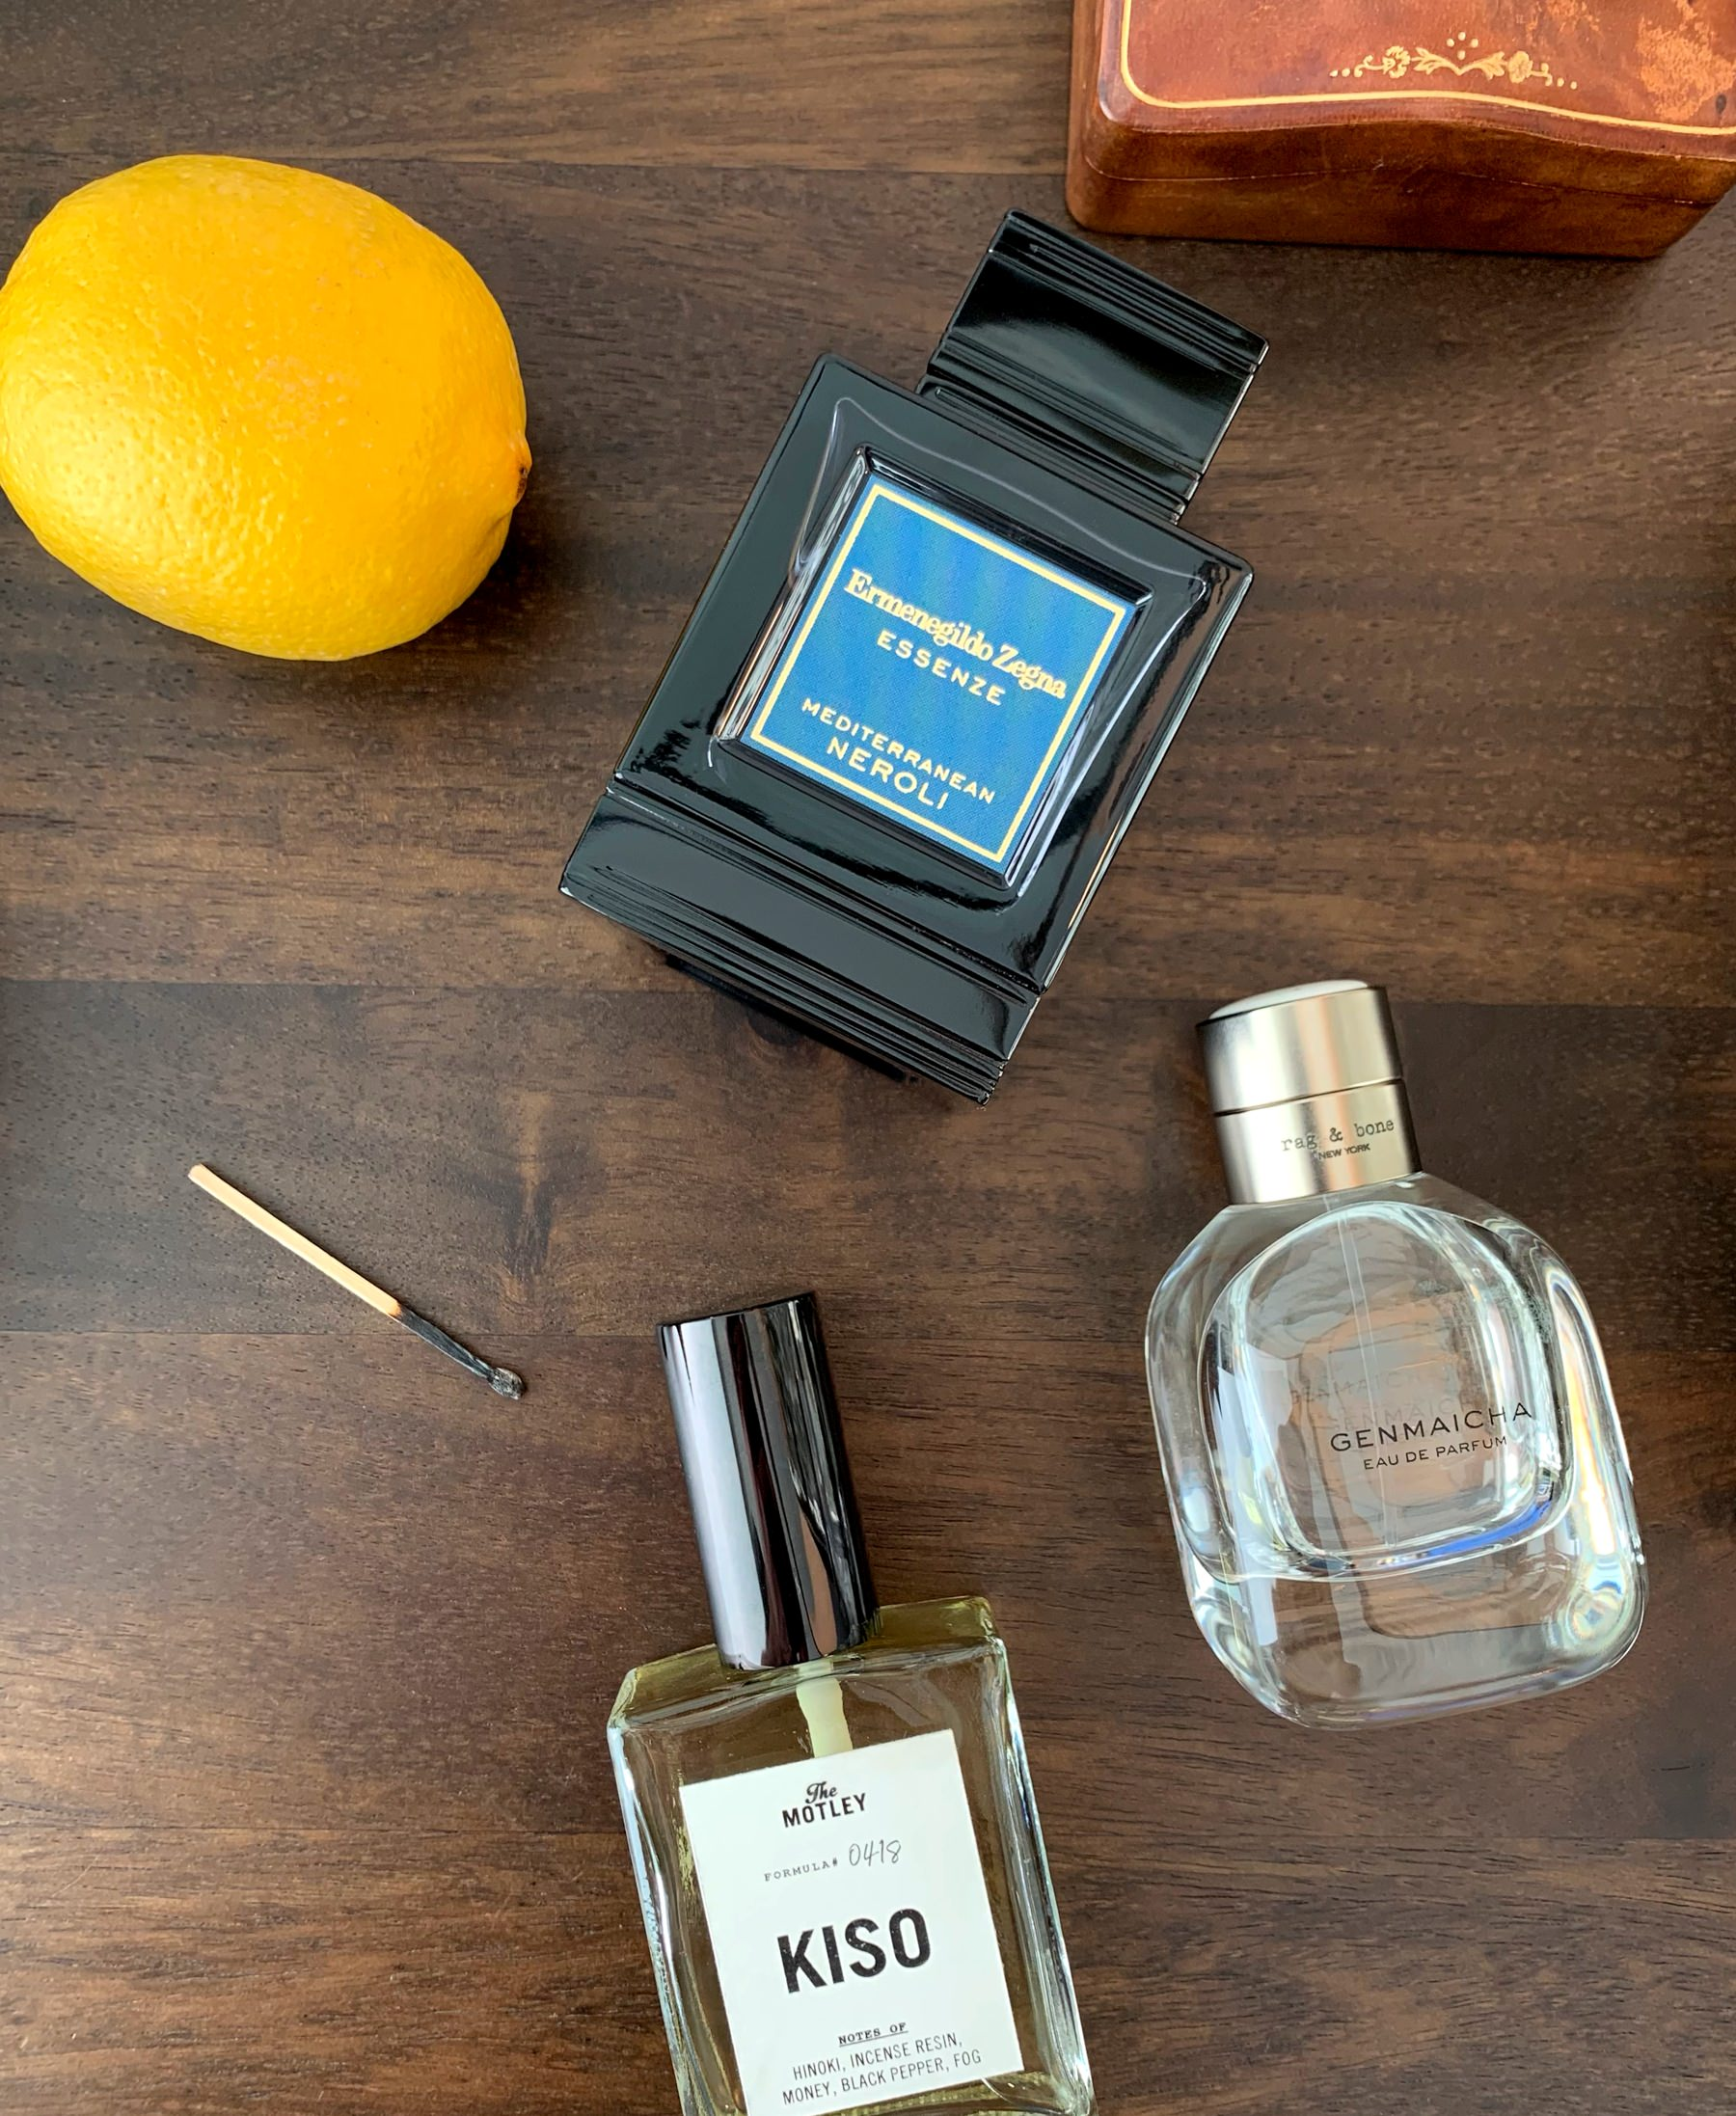 The best colognes for spring 2019